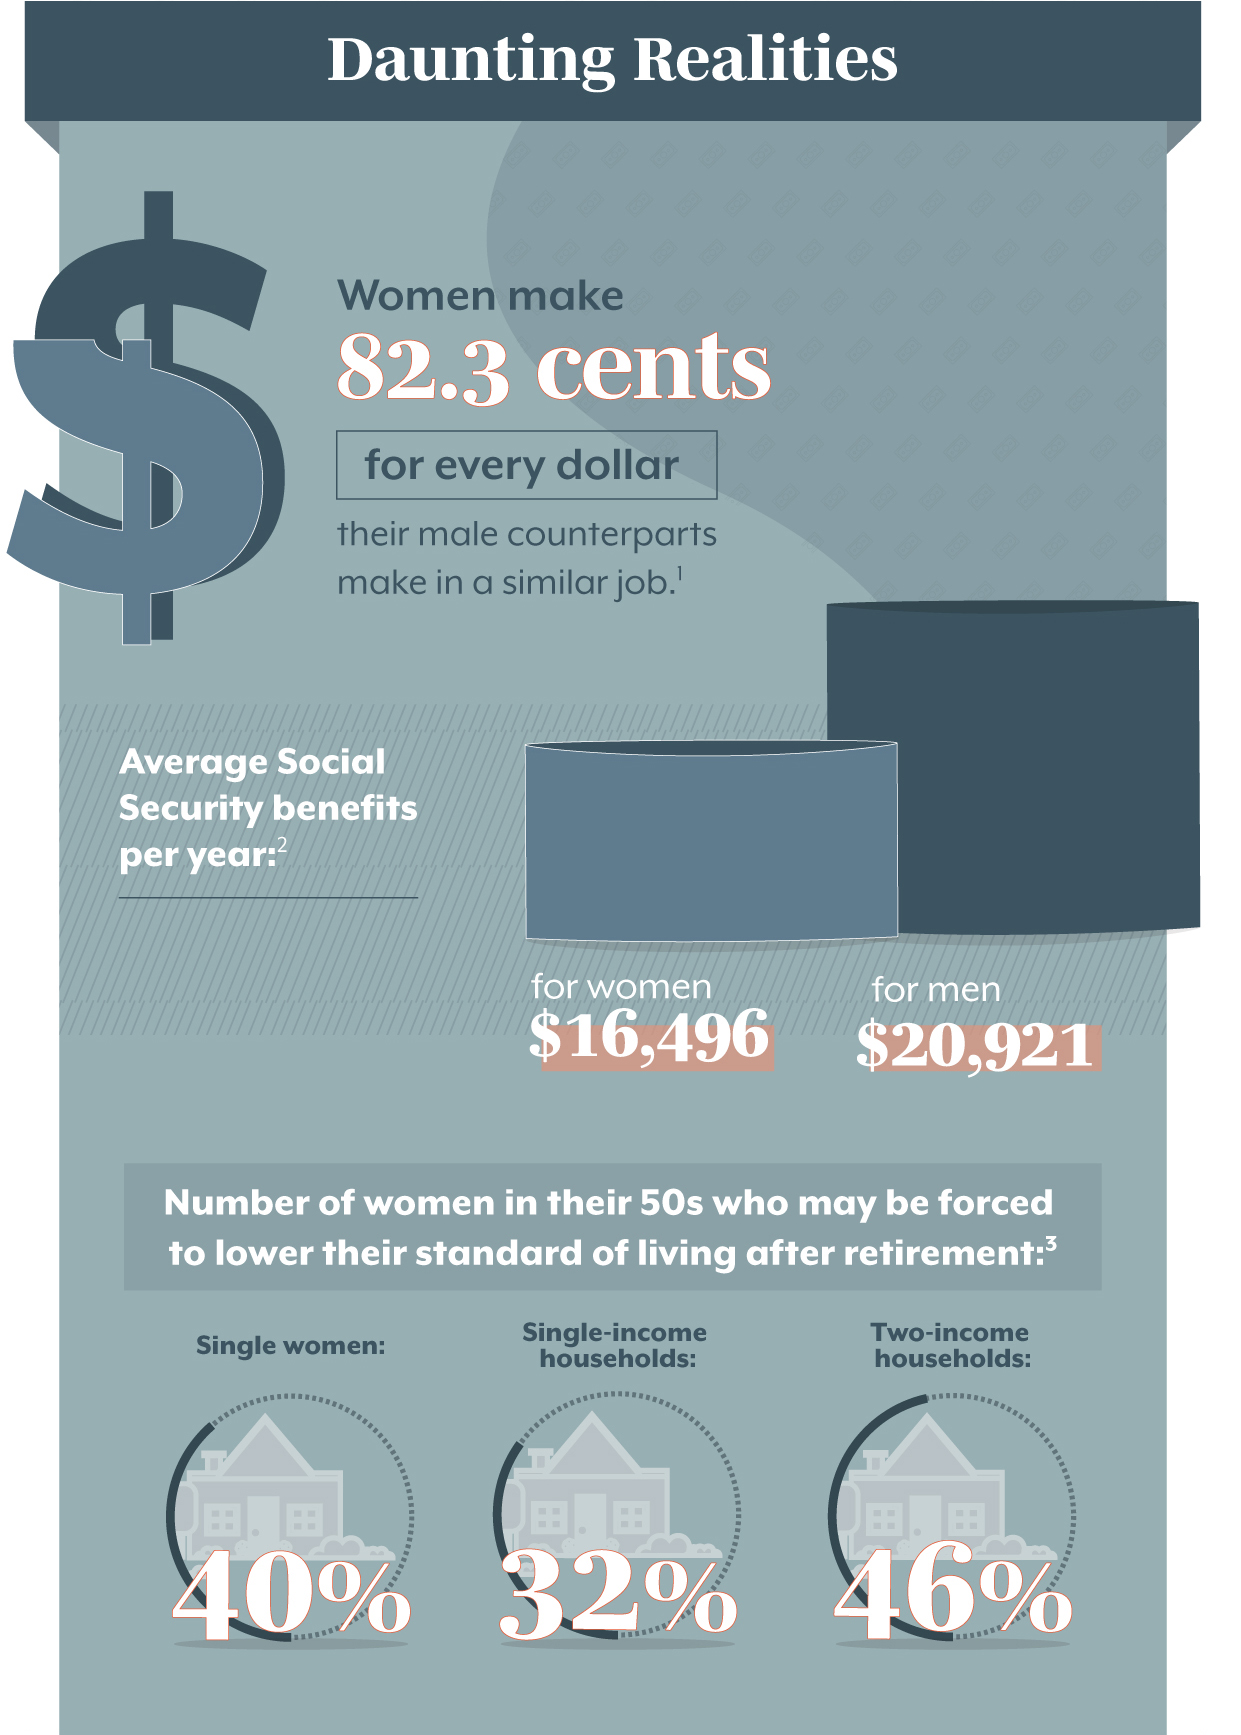 Daunting Realities Although history has seen some significant progress for women over the last century, there's still a long way to go toward financial equality. Women make 80.5 cents for every dollar their male counterparts make in a similar job. (1) The average Social Security retired worker benefit for women is $14,928 per year, compared with $18,780 for men. (2) 46% of married women in their 50s in two-income households are at risk of being unable to maintain their standard of living in retirement. 32% of married women in their 50s in one-income households are at risk of being unable to maintain their standard of living in retirement. 39% of single women in their 50s are at risk of being unable to maintain their standard of living in retirement. (3)